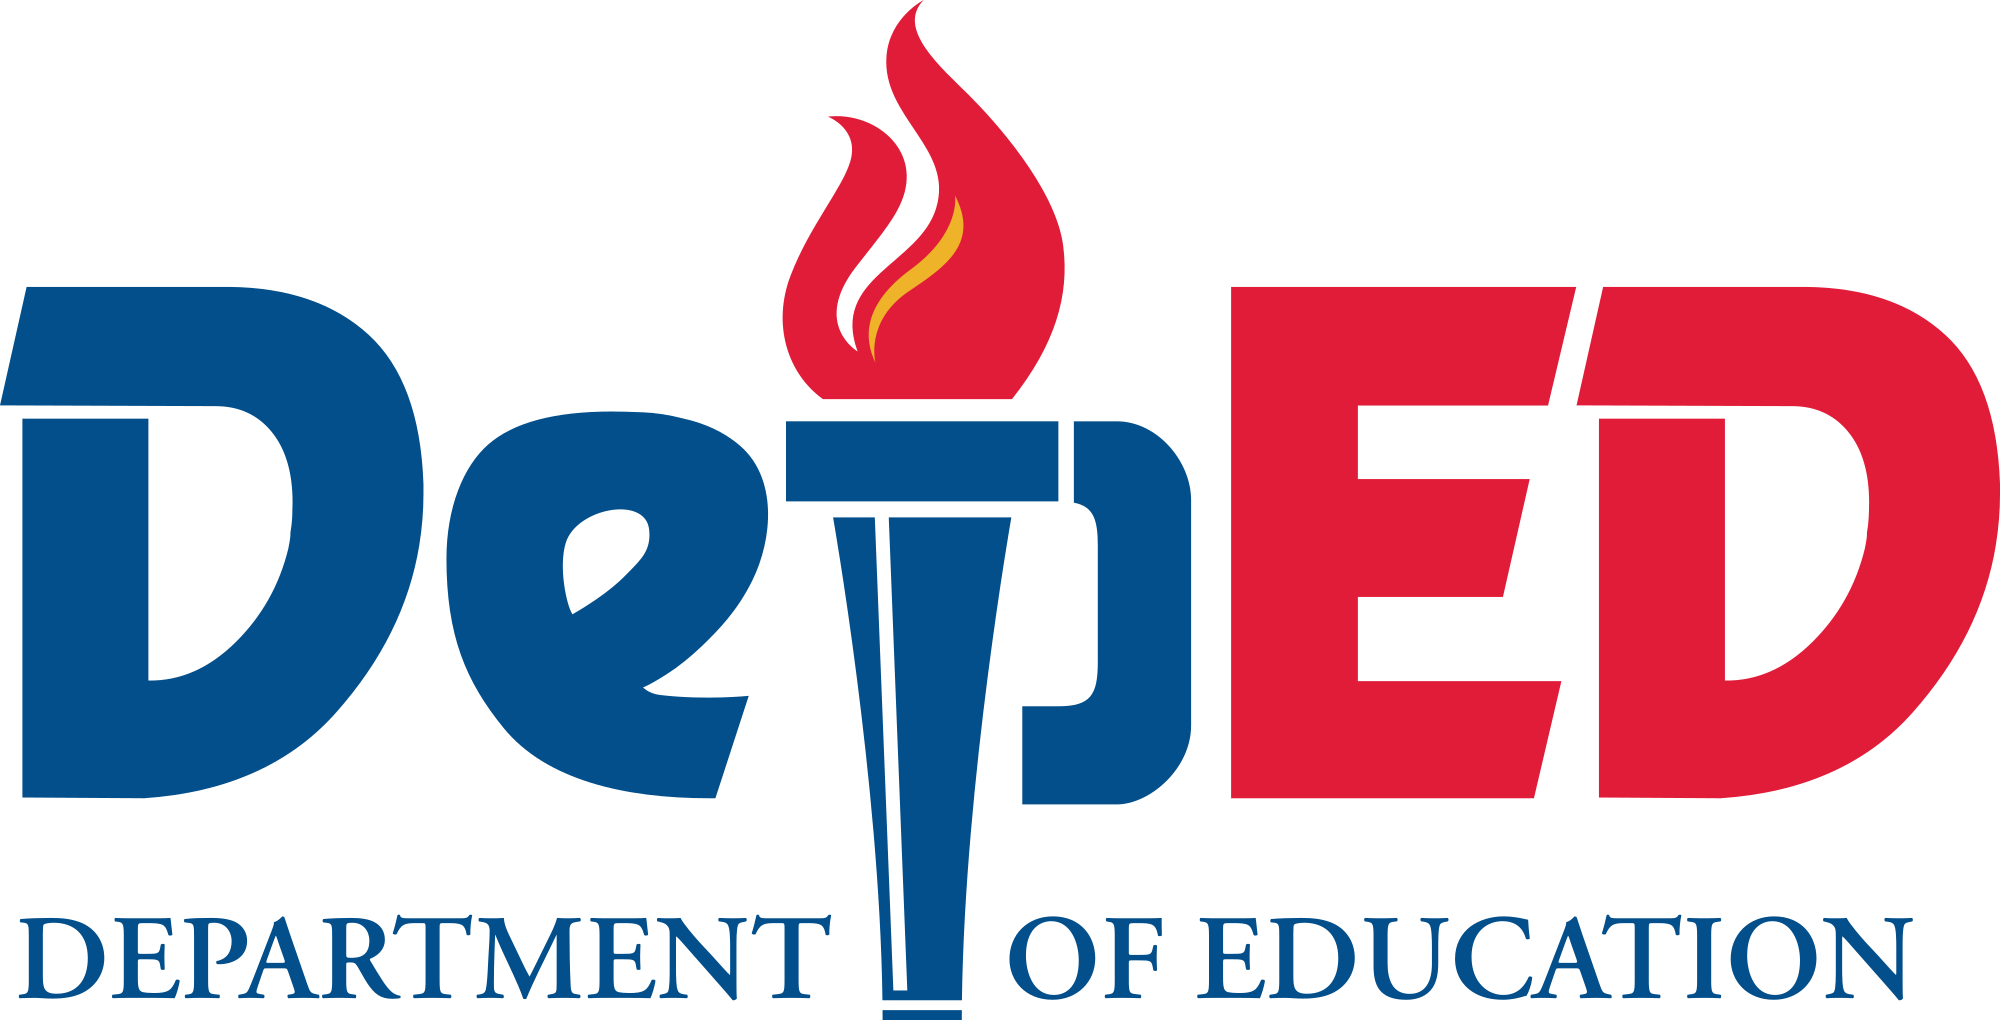 Definition svg educational rockstar. Department of education philippines